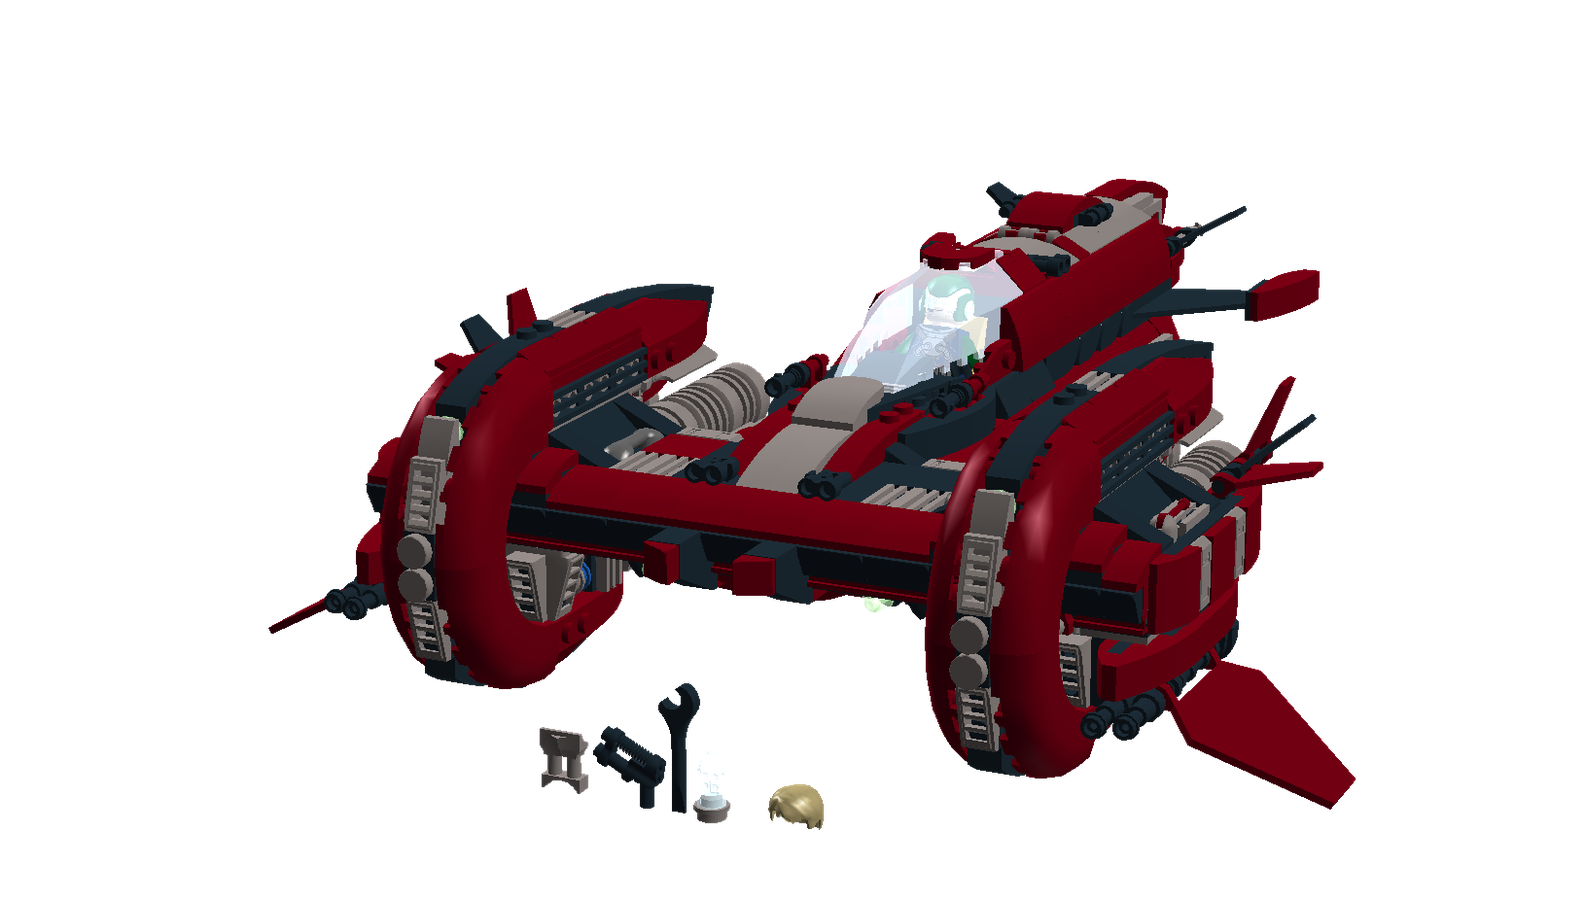 Lego ideas product tesla. Spaceship clipart cockpit